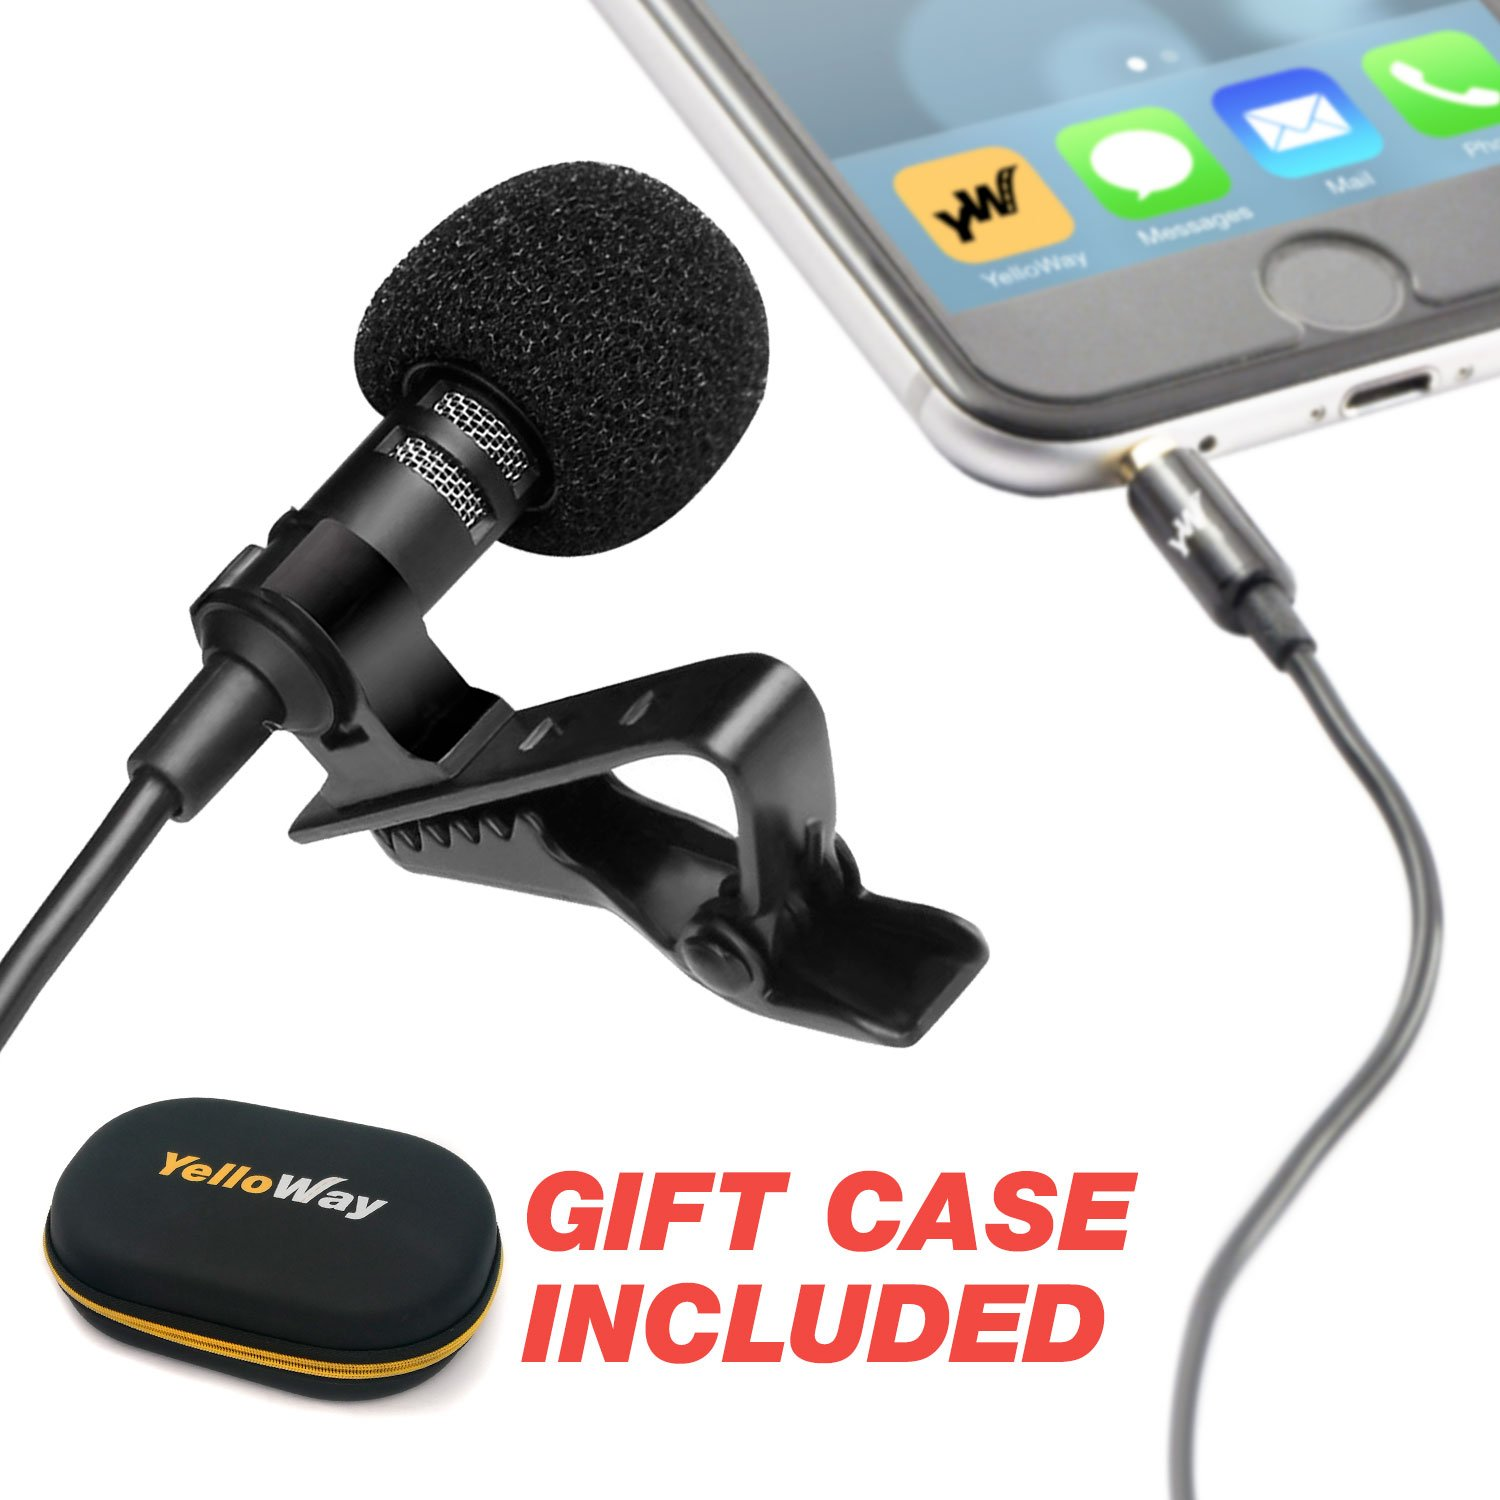 Professional Grade Lavalier Lapel Microphone - For Youtube Interviews & Podcasting & Live Streaming & Video - Perfect Lav Mic for Recording on Iphone 5, 6, 6s, 7 plus, 8, X - External Mic with Clip On